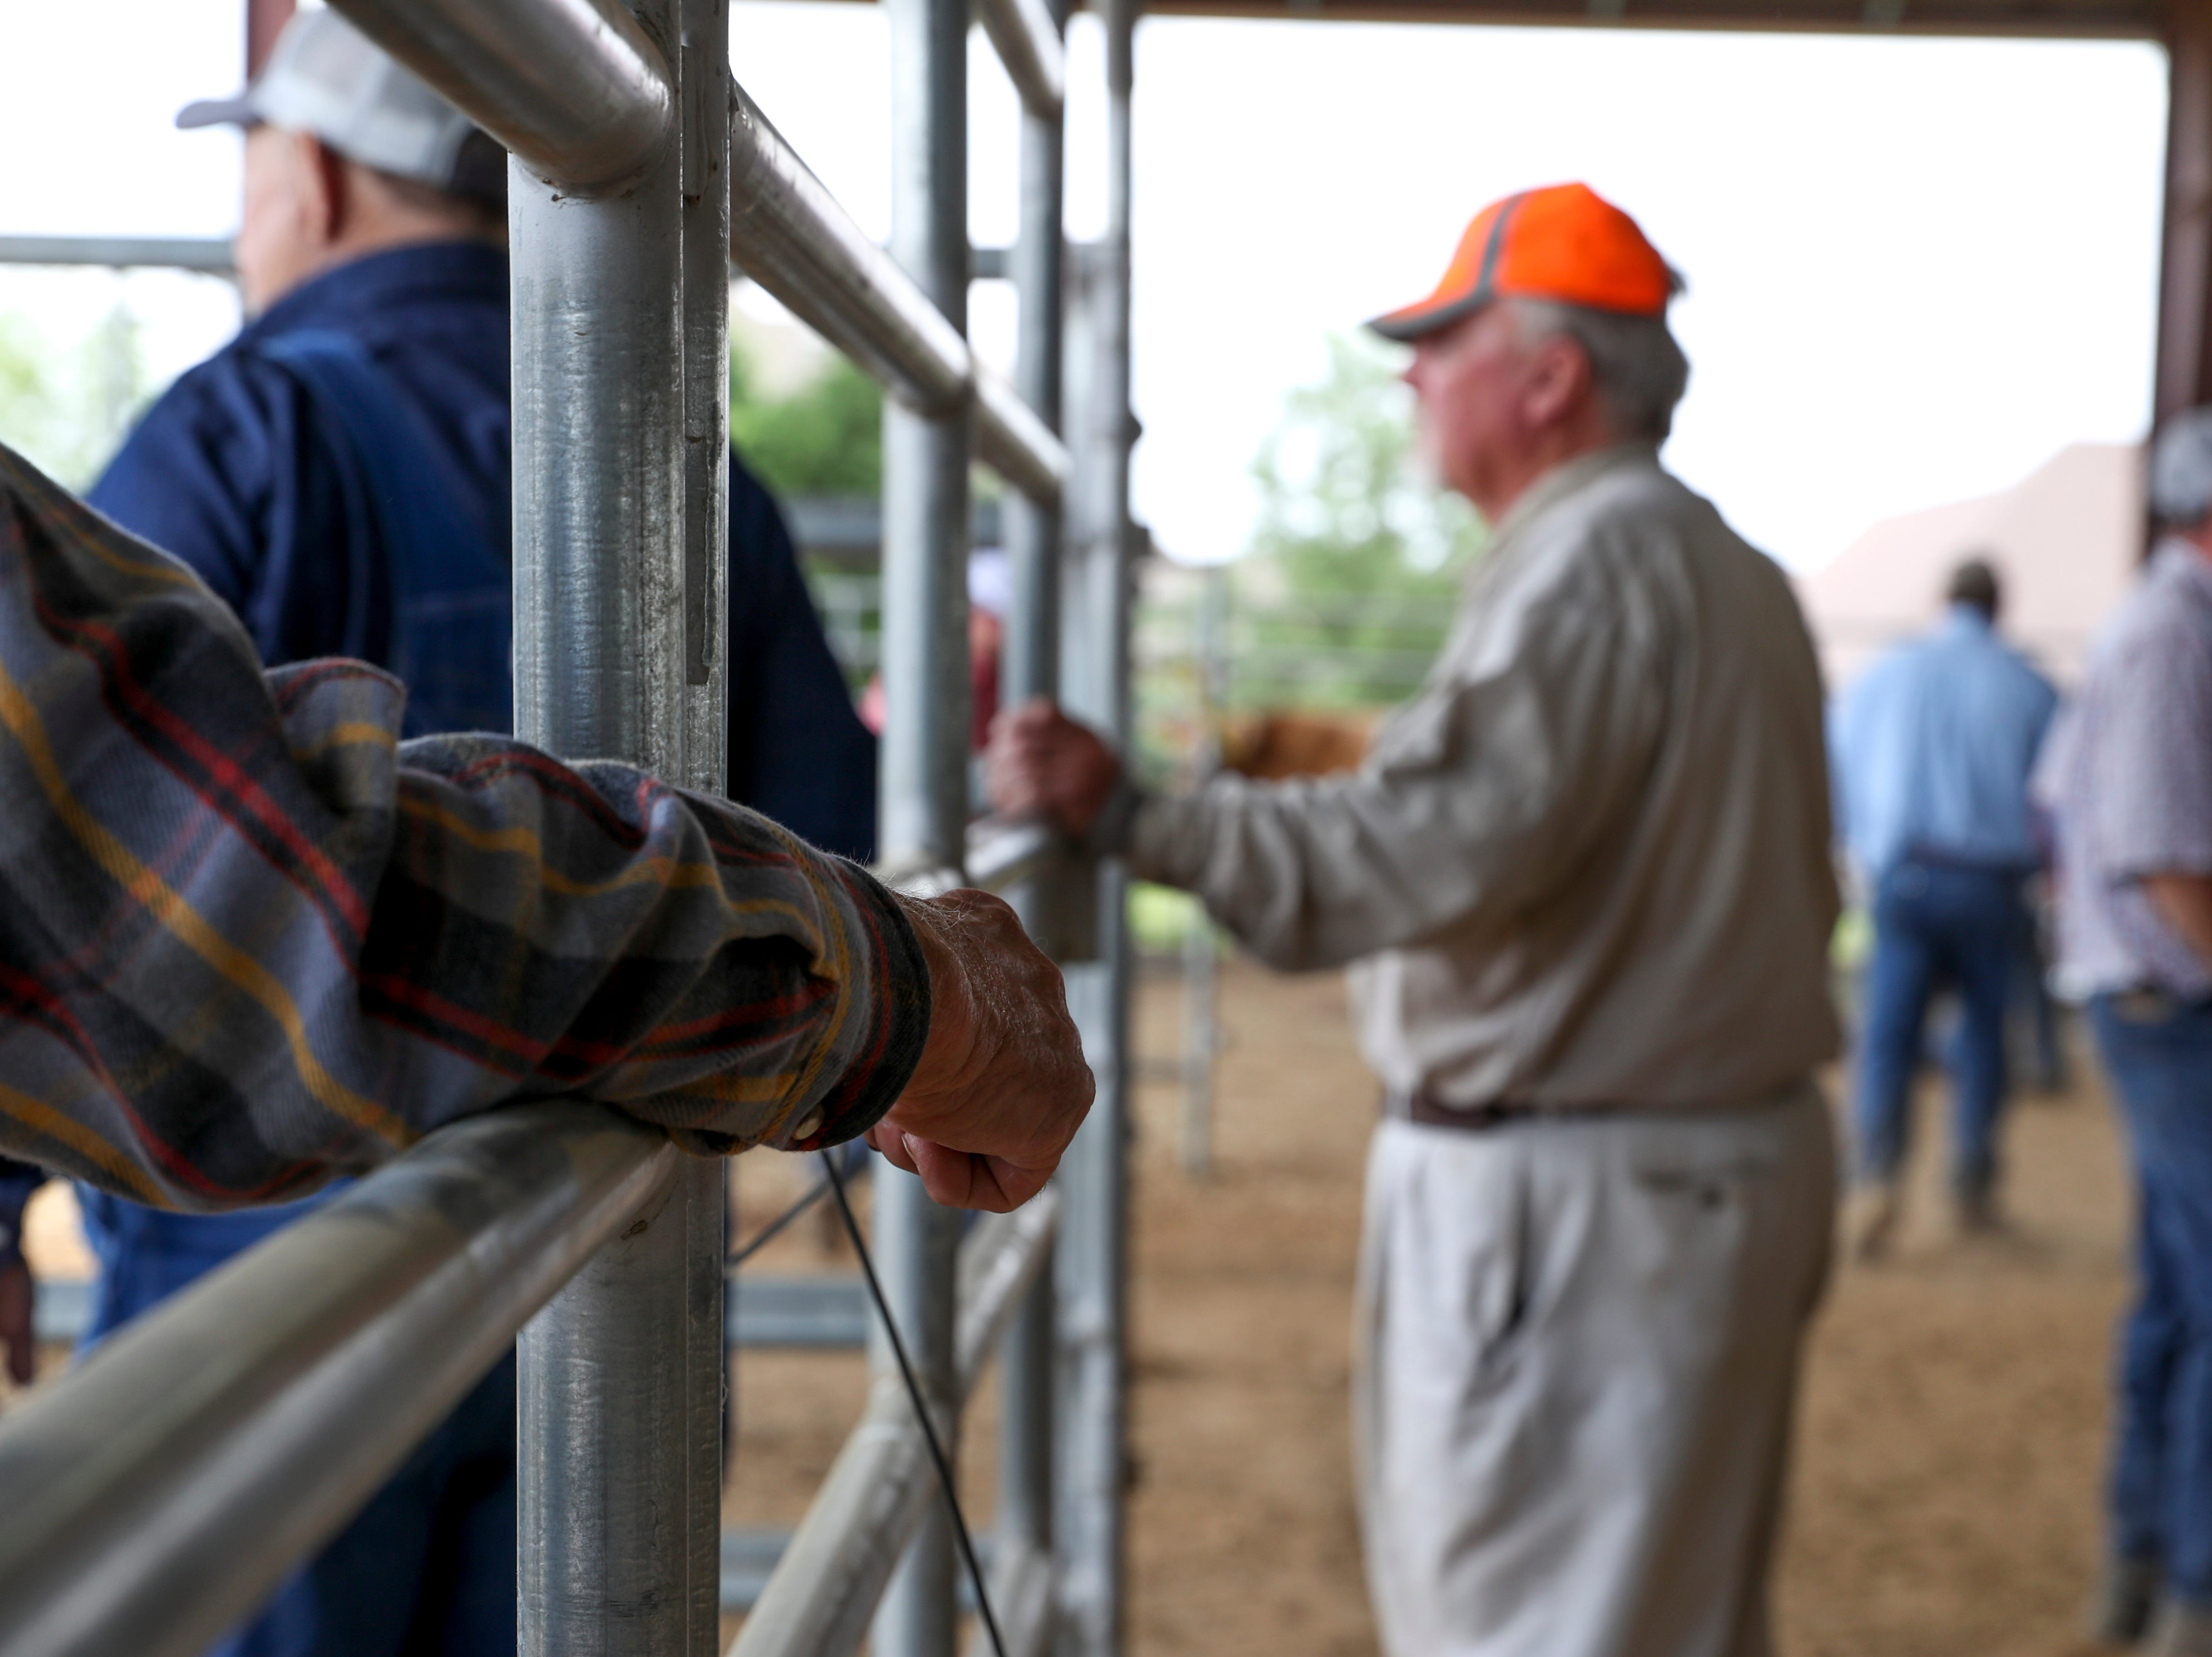 A farmer leans against railing and leaves one arm dangling outside the fence while watching steer be directed towards their trailer at the 69th annual Clarksville Area Junior Better Beef Show at the John Bartee Agricultural Center in Clarksville, Tenn., on Tuesday, May 14, 2019.